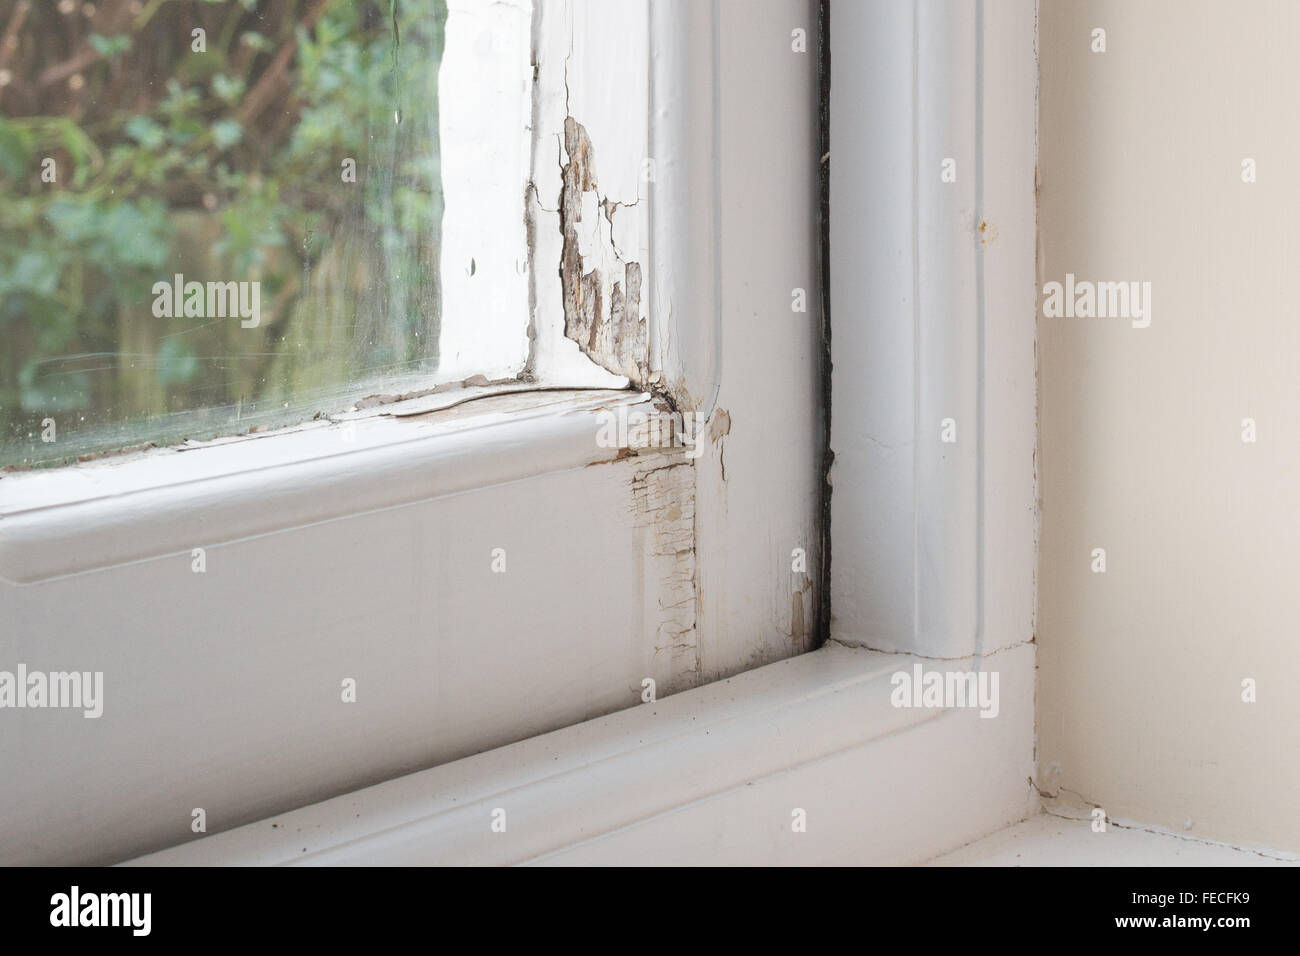 Damage to wooden single glazed window frame caused by condensation and rain - Stock Image